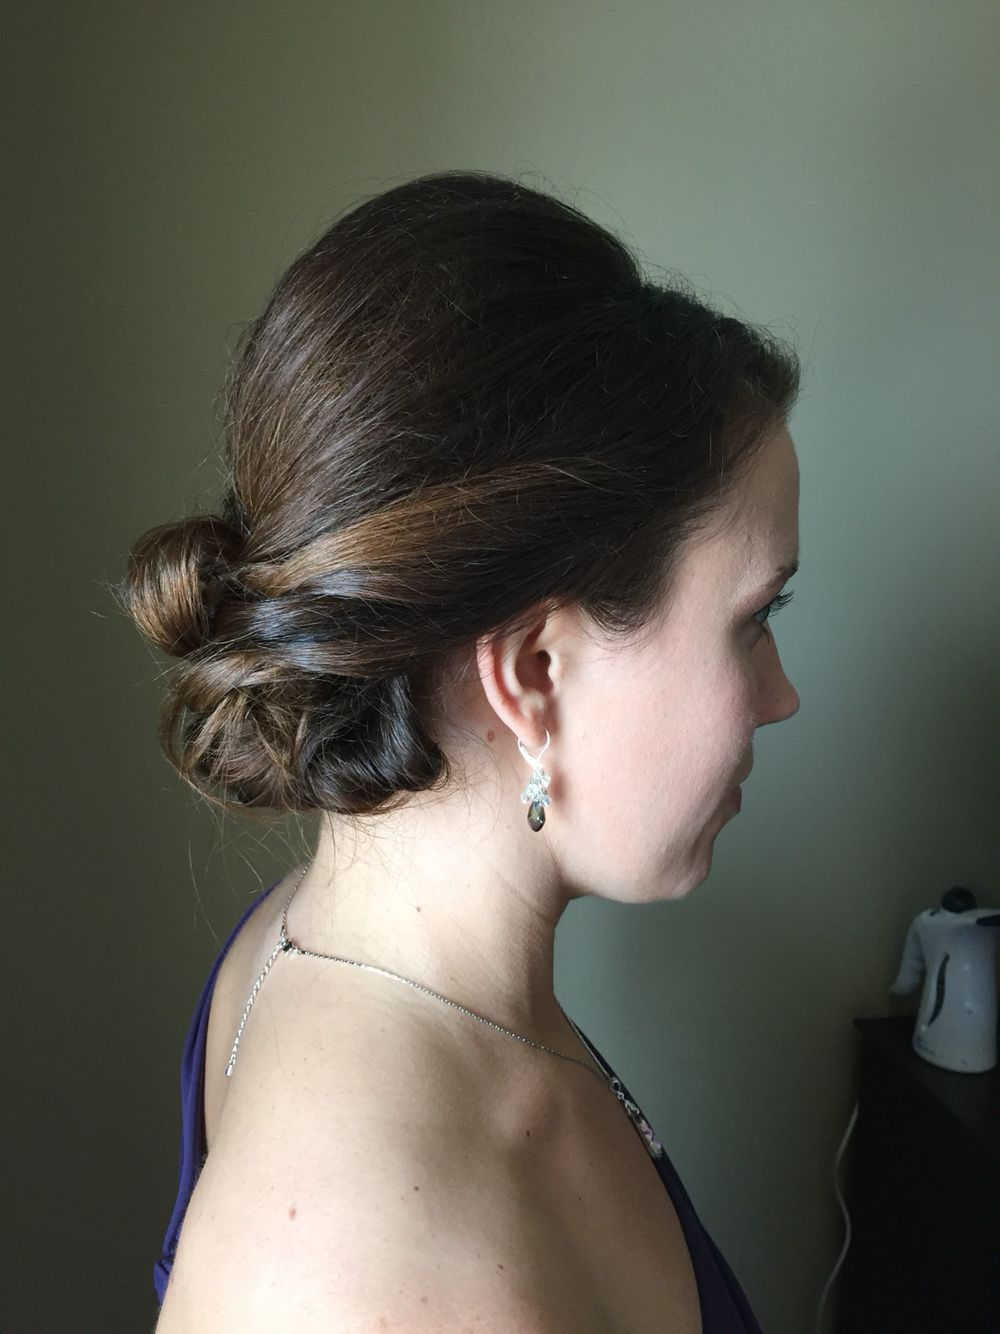 Hair by Kara Williams decatur Illinois (With images) Ear